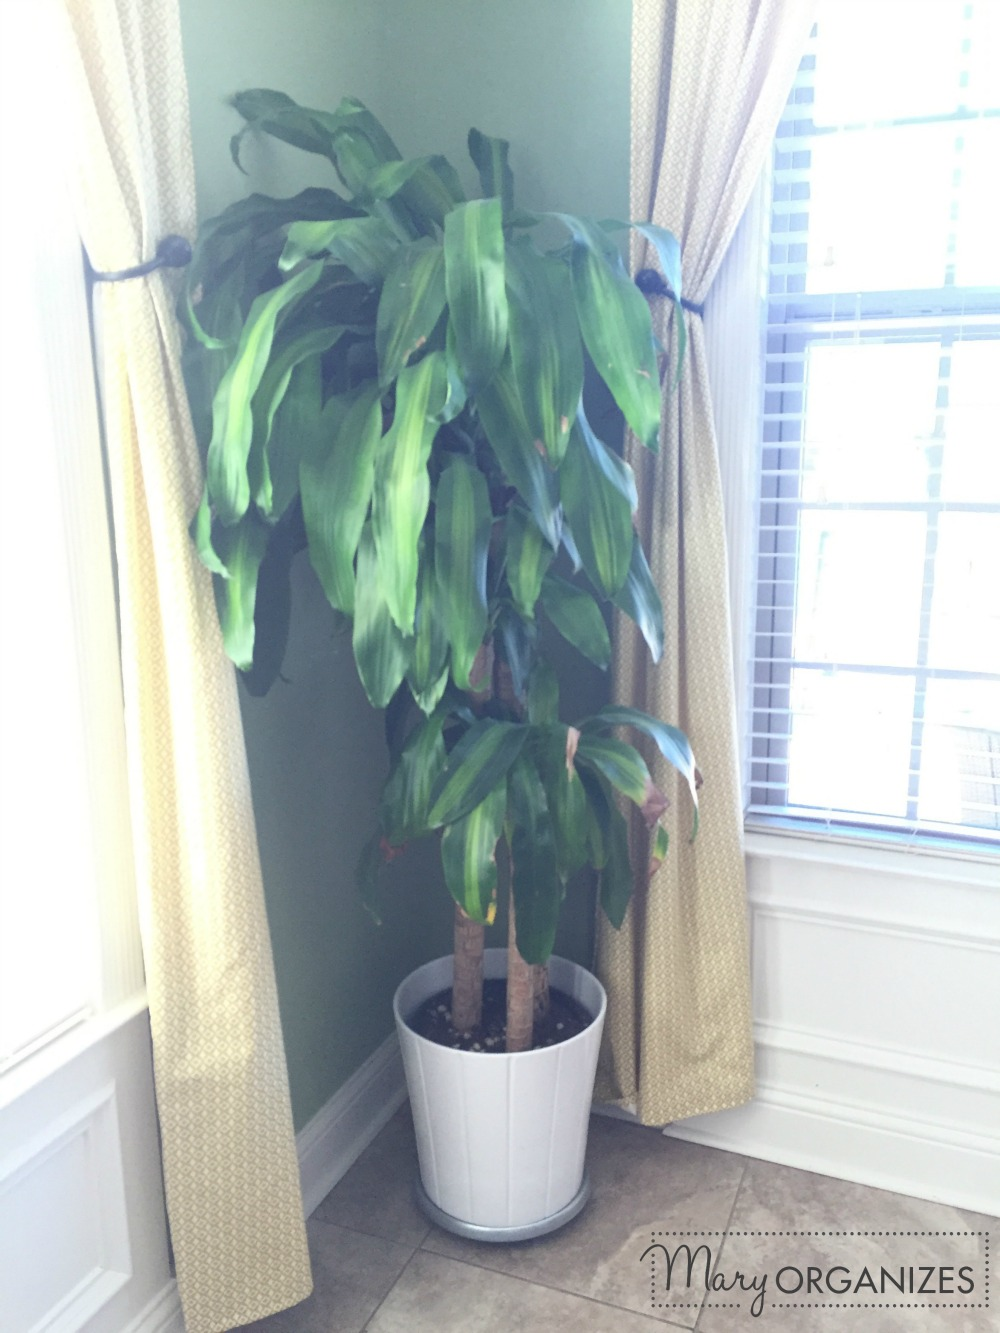 Mary Organizes - house plant still alive